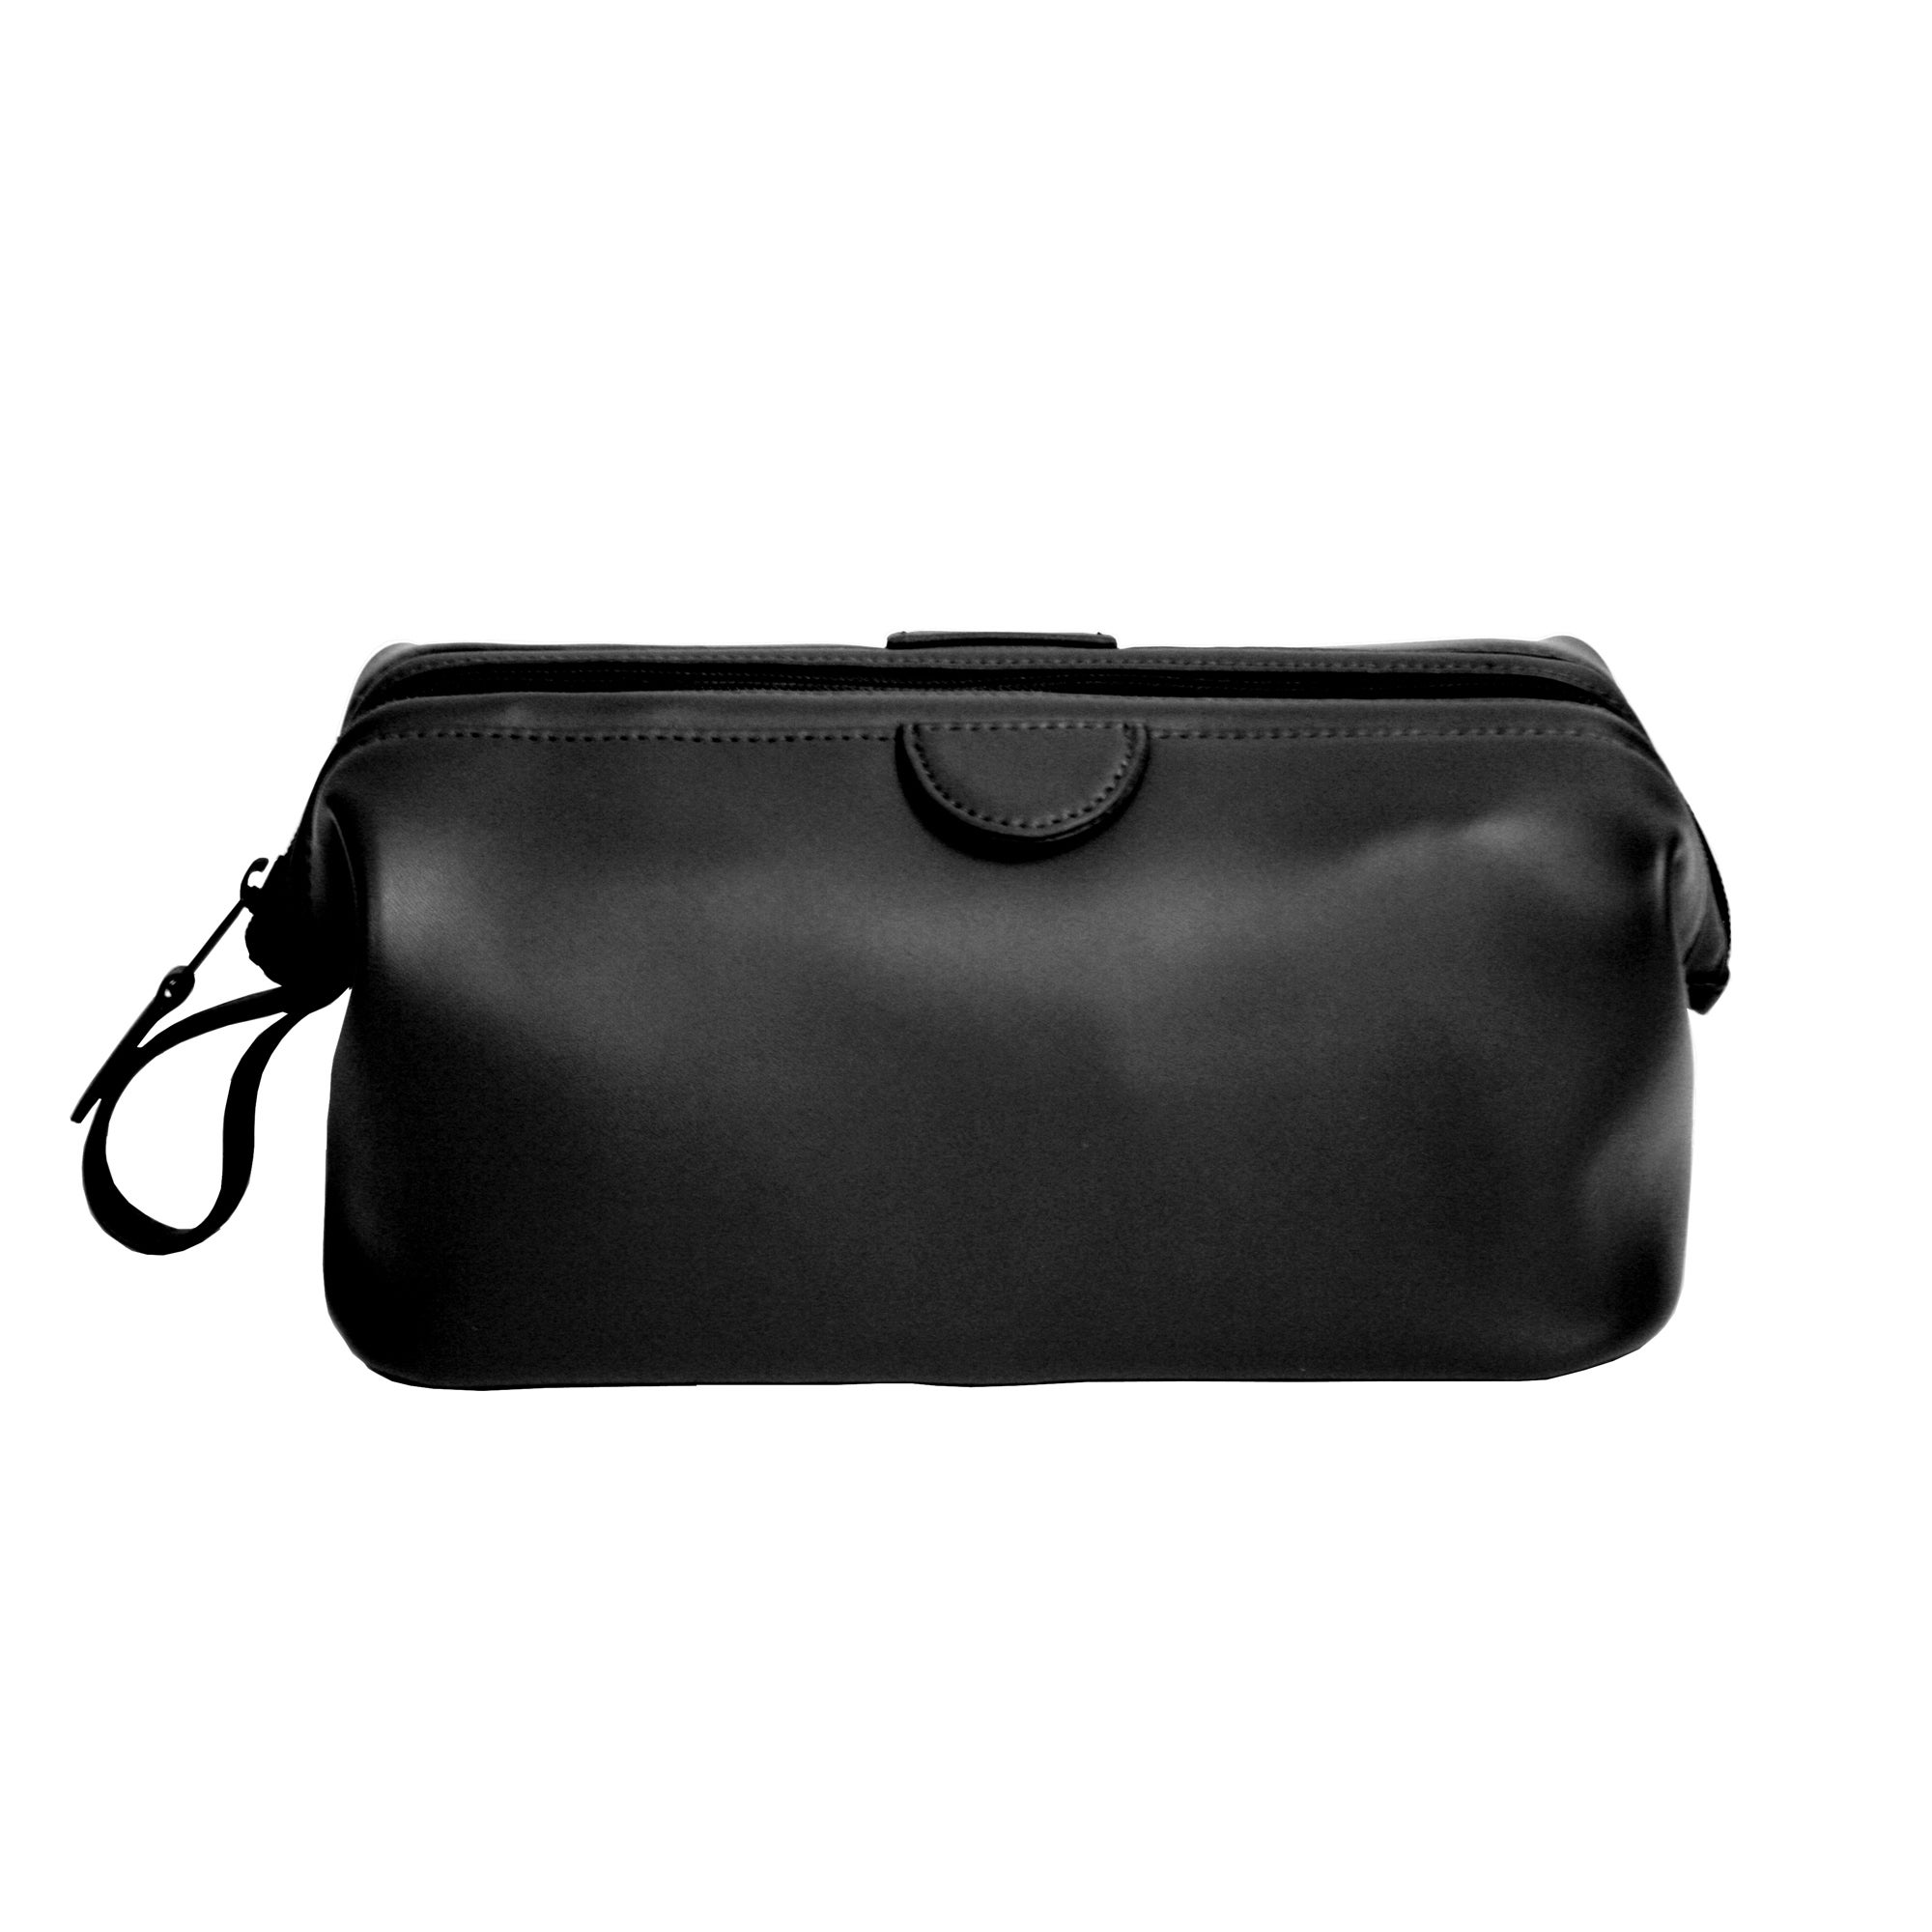 129260a56cb0 Shop Royce Leather Genuine Leather Toiletry Travel Wash Bag - On Sale -  Free Shipping Today - Overstock - 9991265